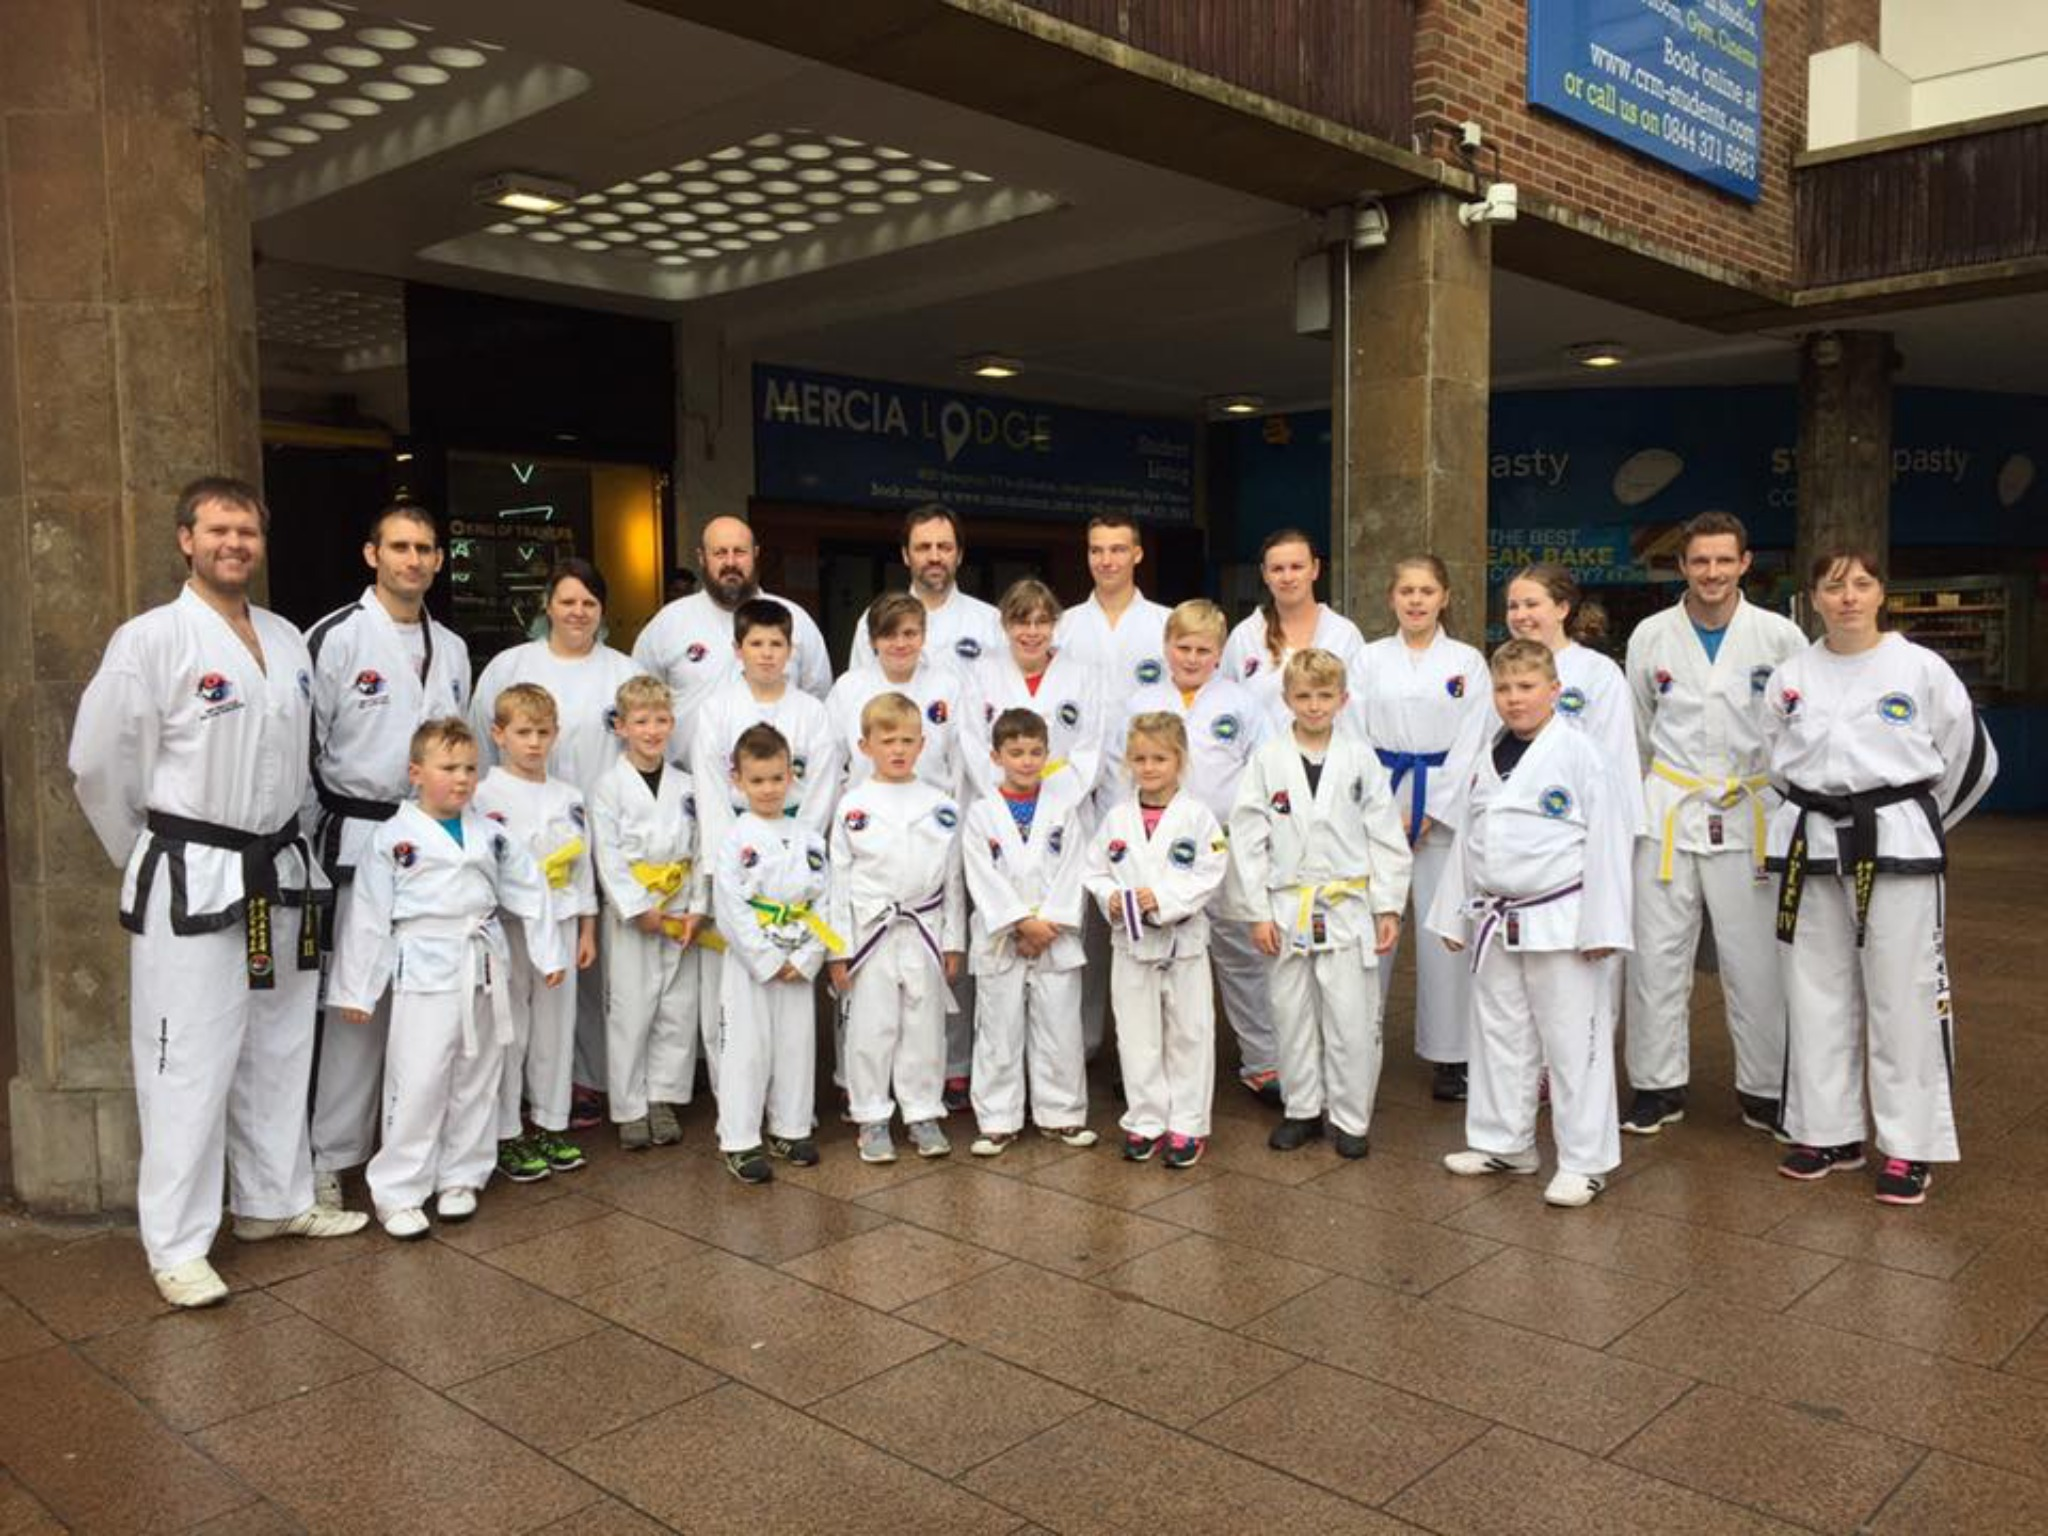 Hall Family Taekwondo helped create a new Guinness World Record